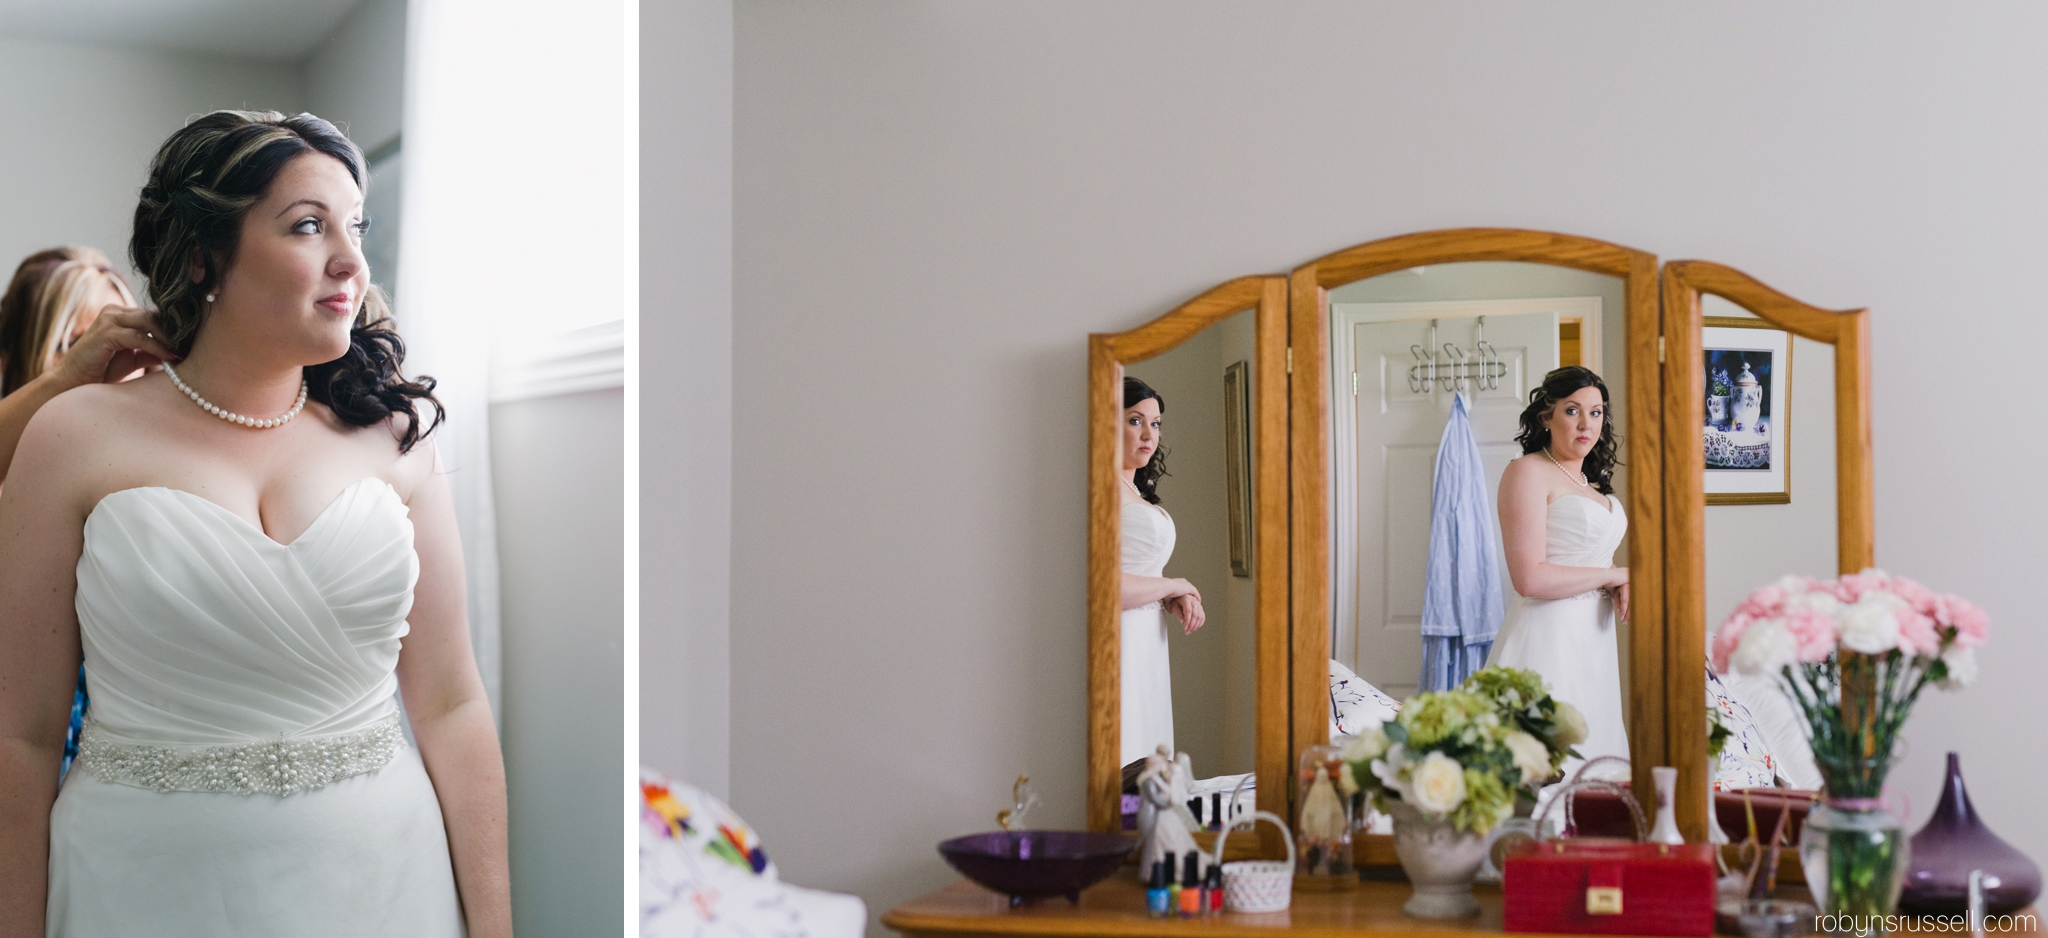 11-bride-getting-ready.jpg